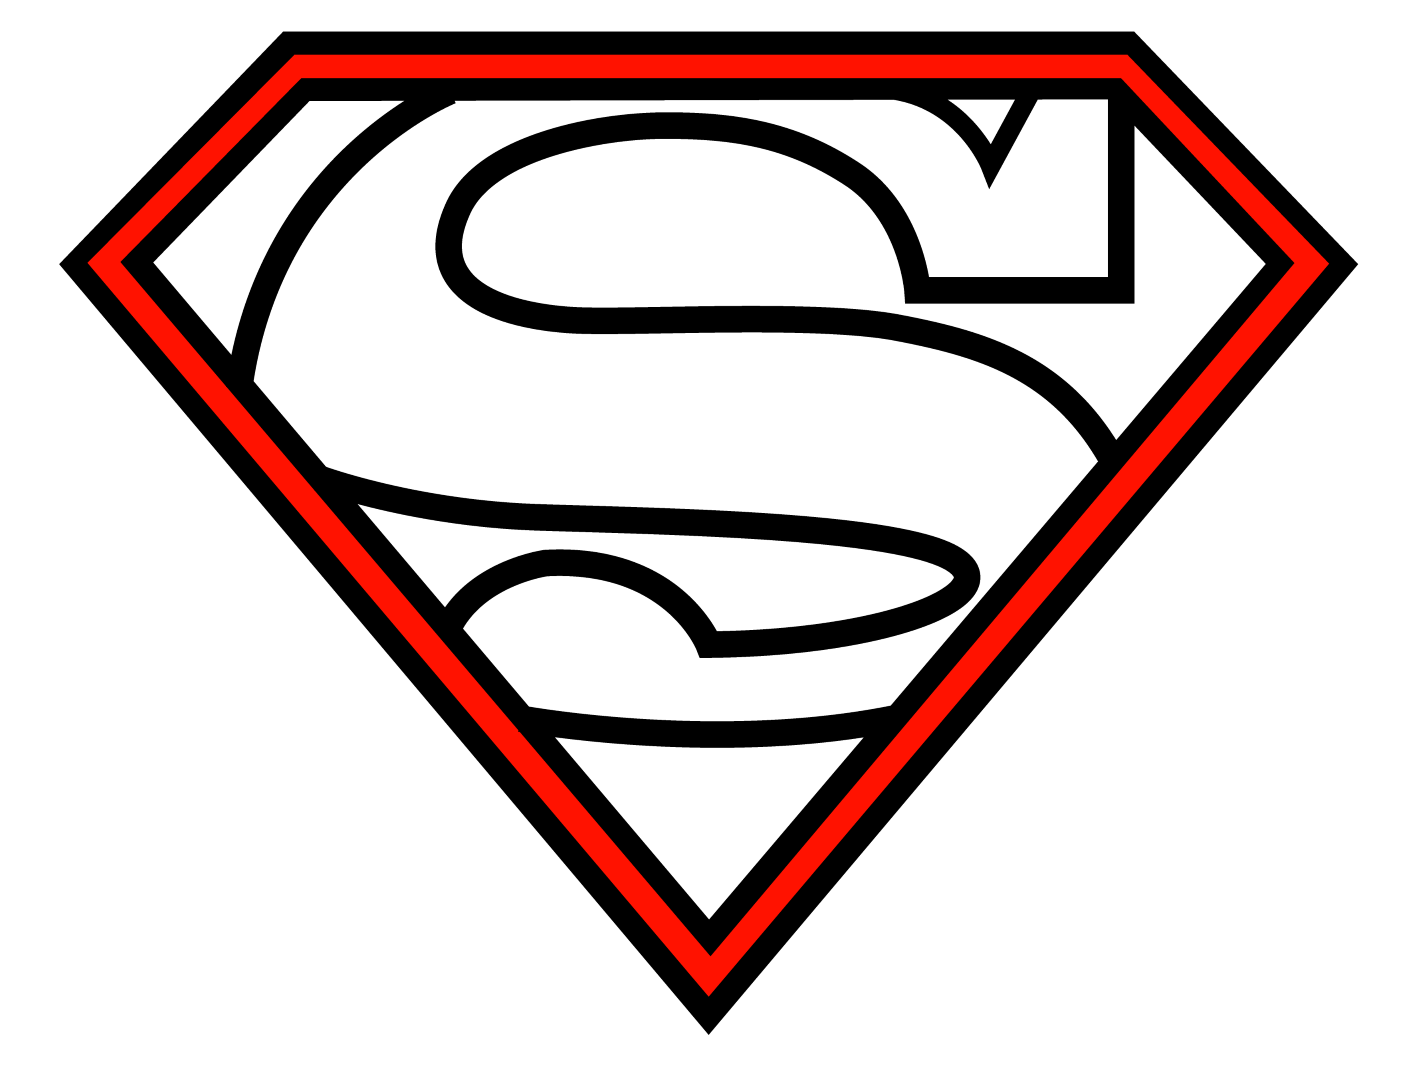 Diamond clipart superman Central  How Draw Draw